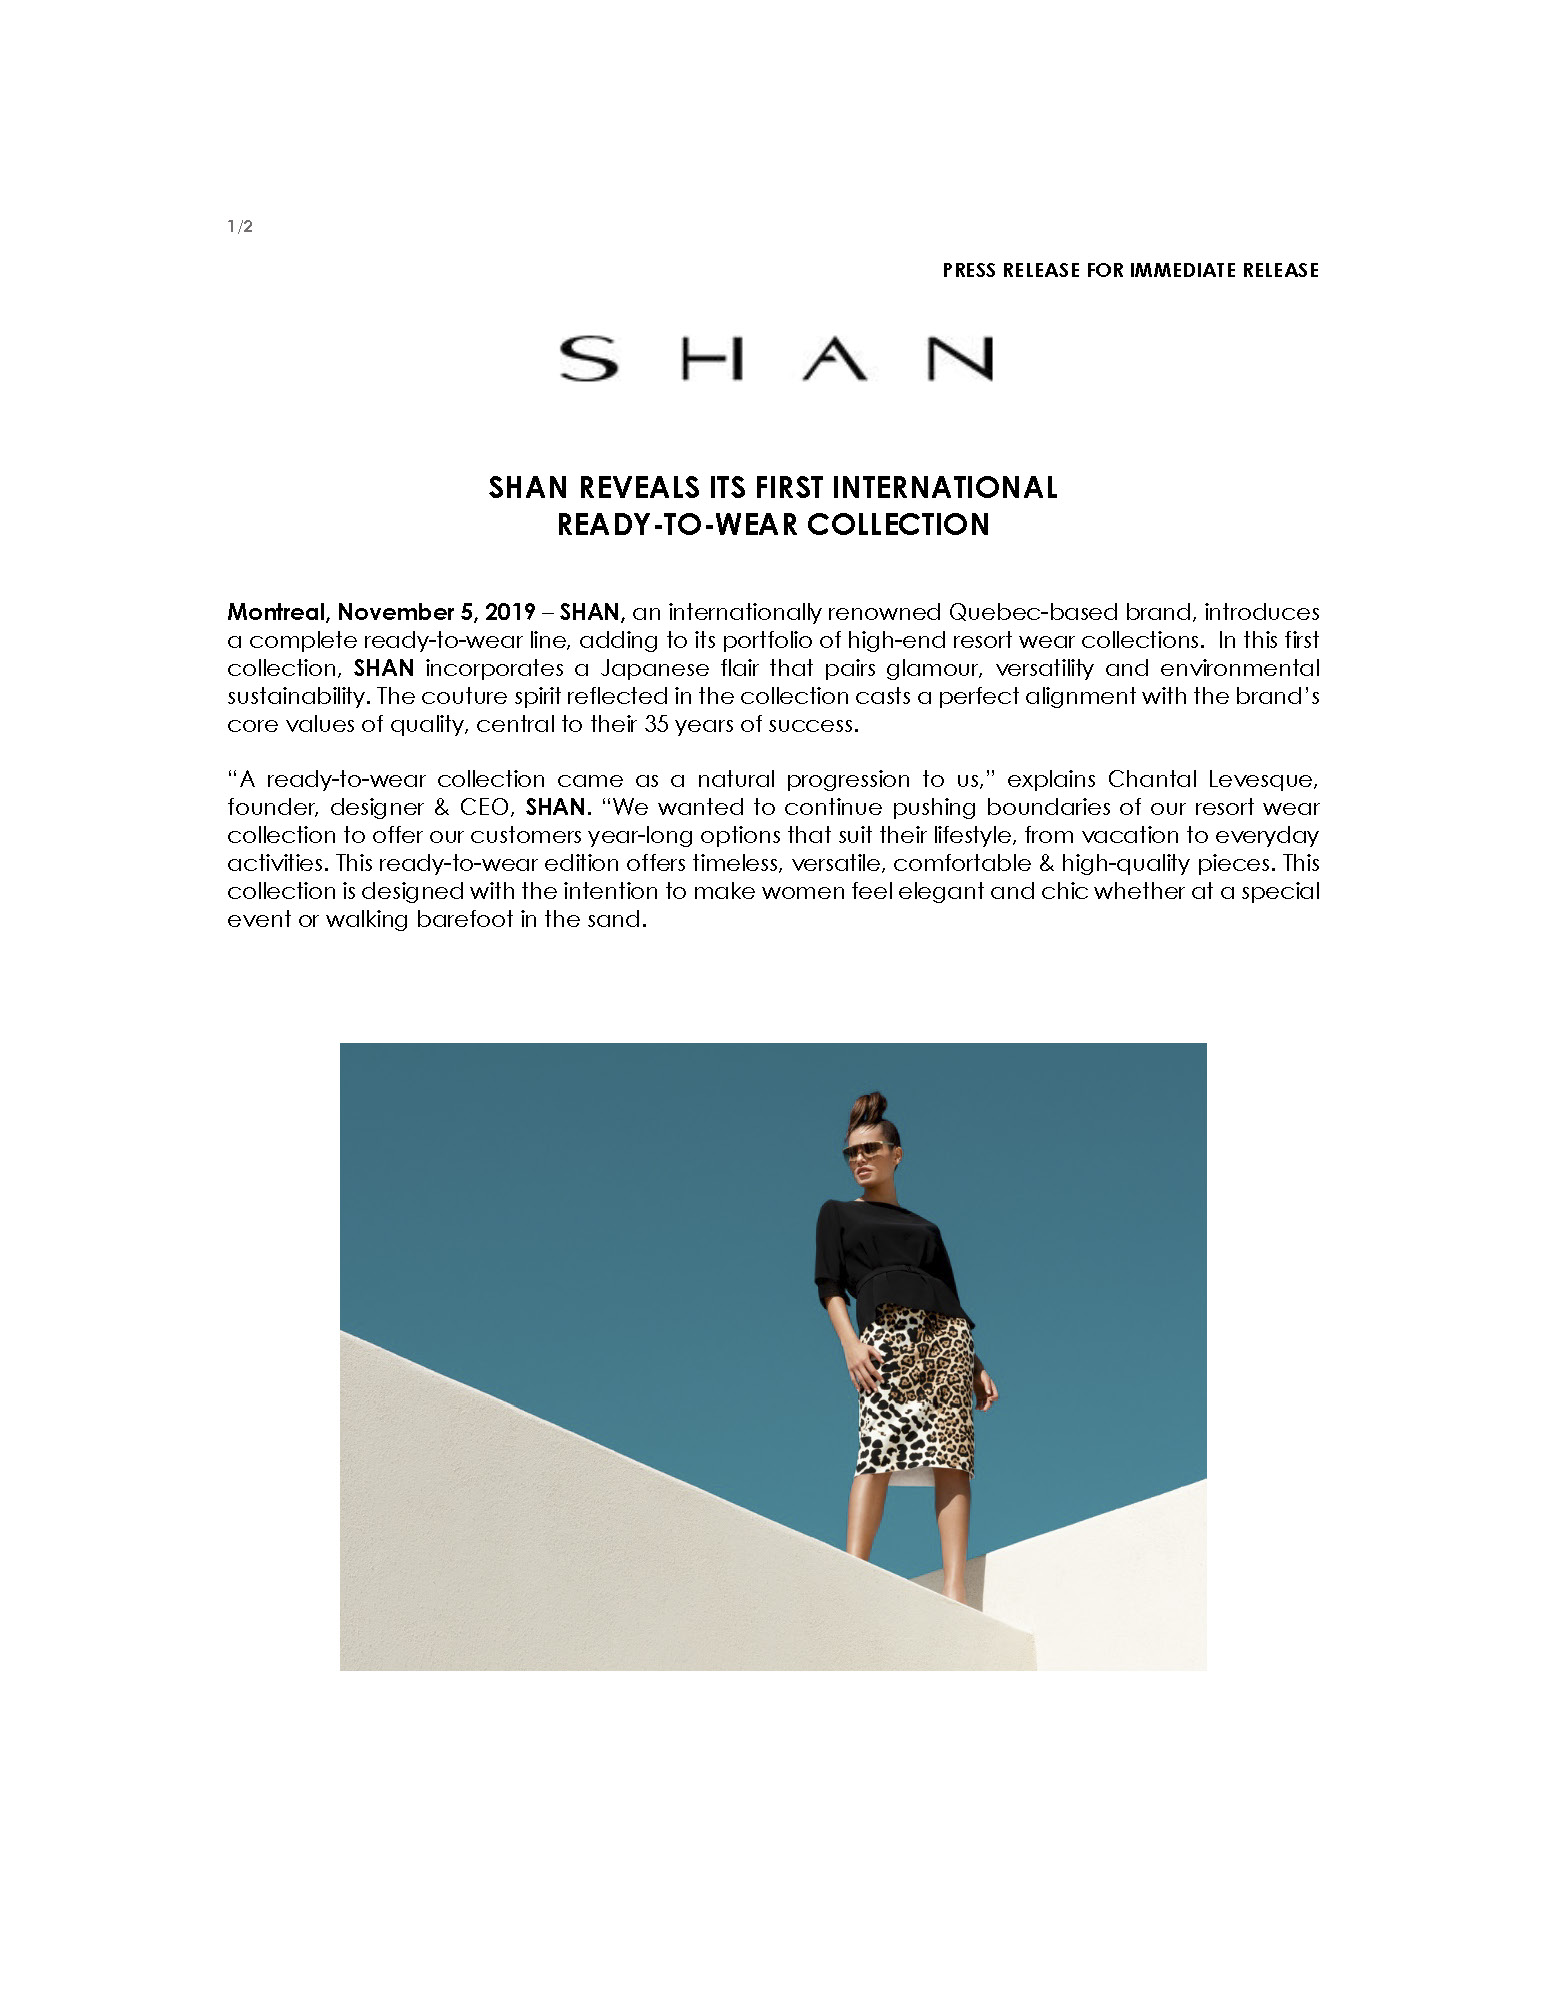 shan-reveals-their-ready-to-wear-collection_page_1